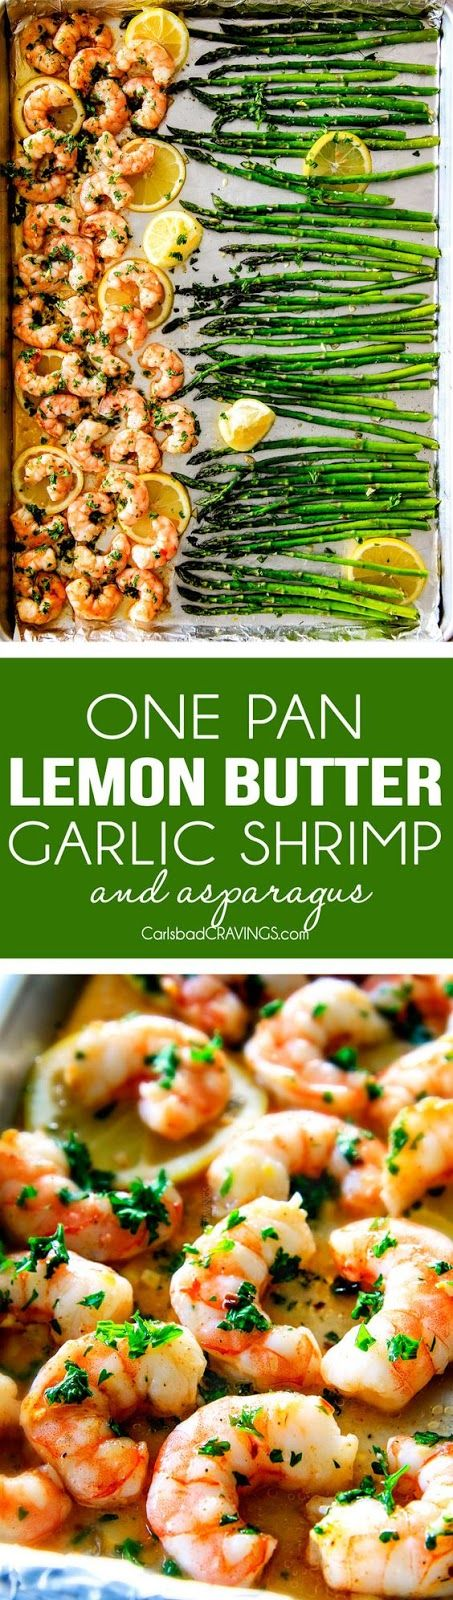 Roasted Lemon Butter Garlic Shrimp and Asparagus | Food And Cake Recipes